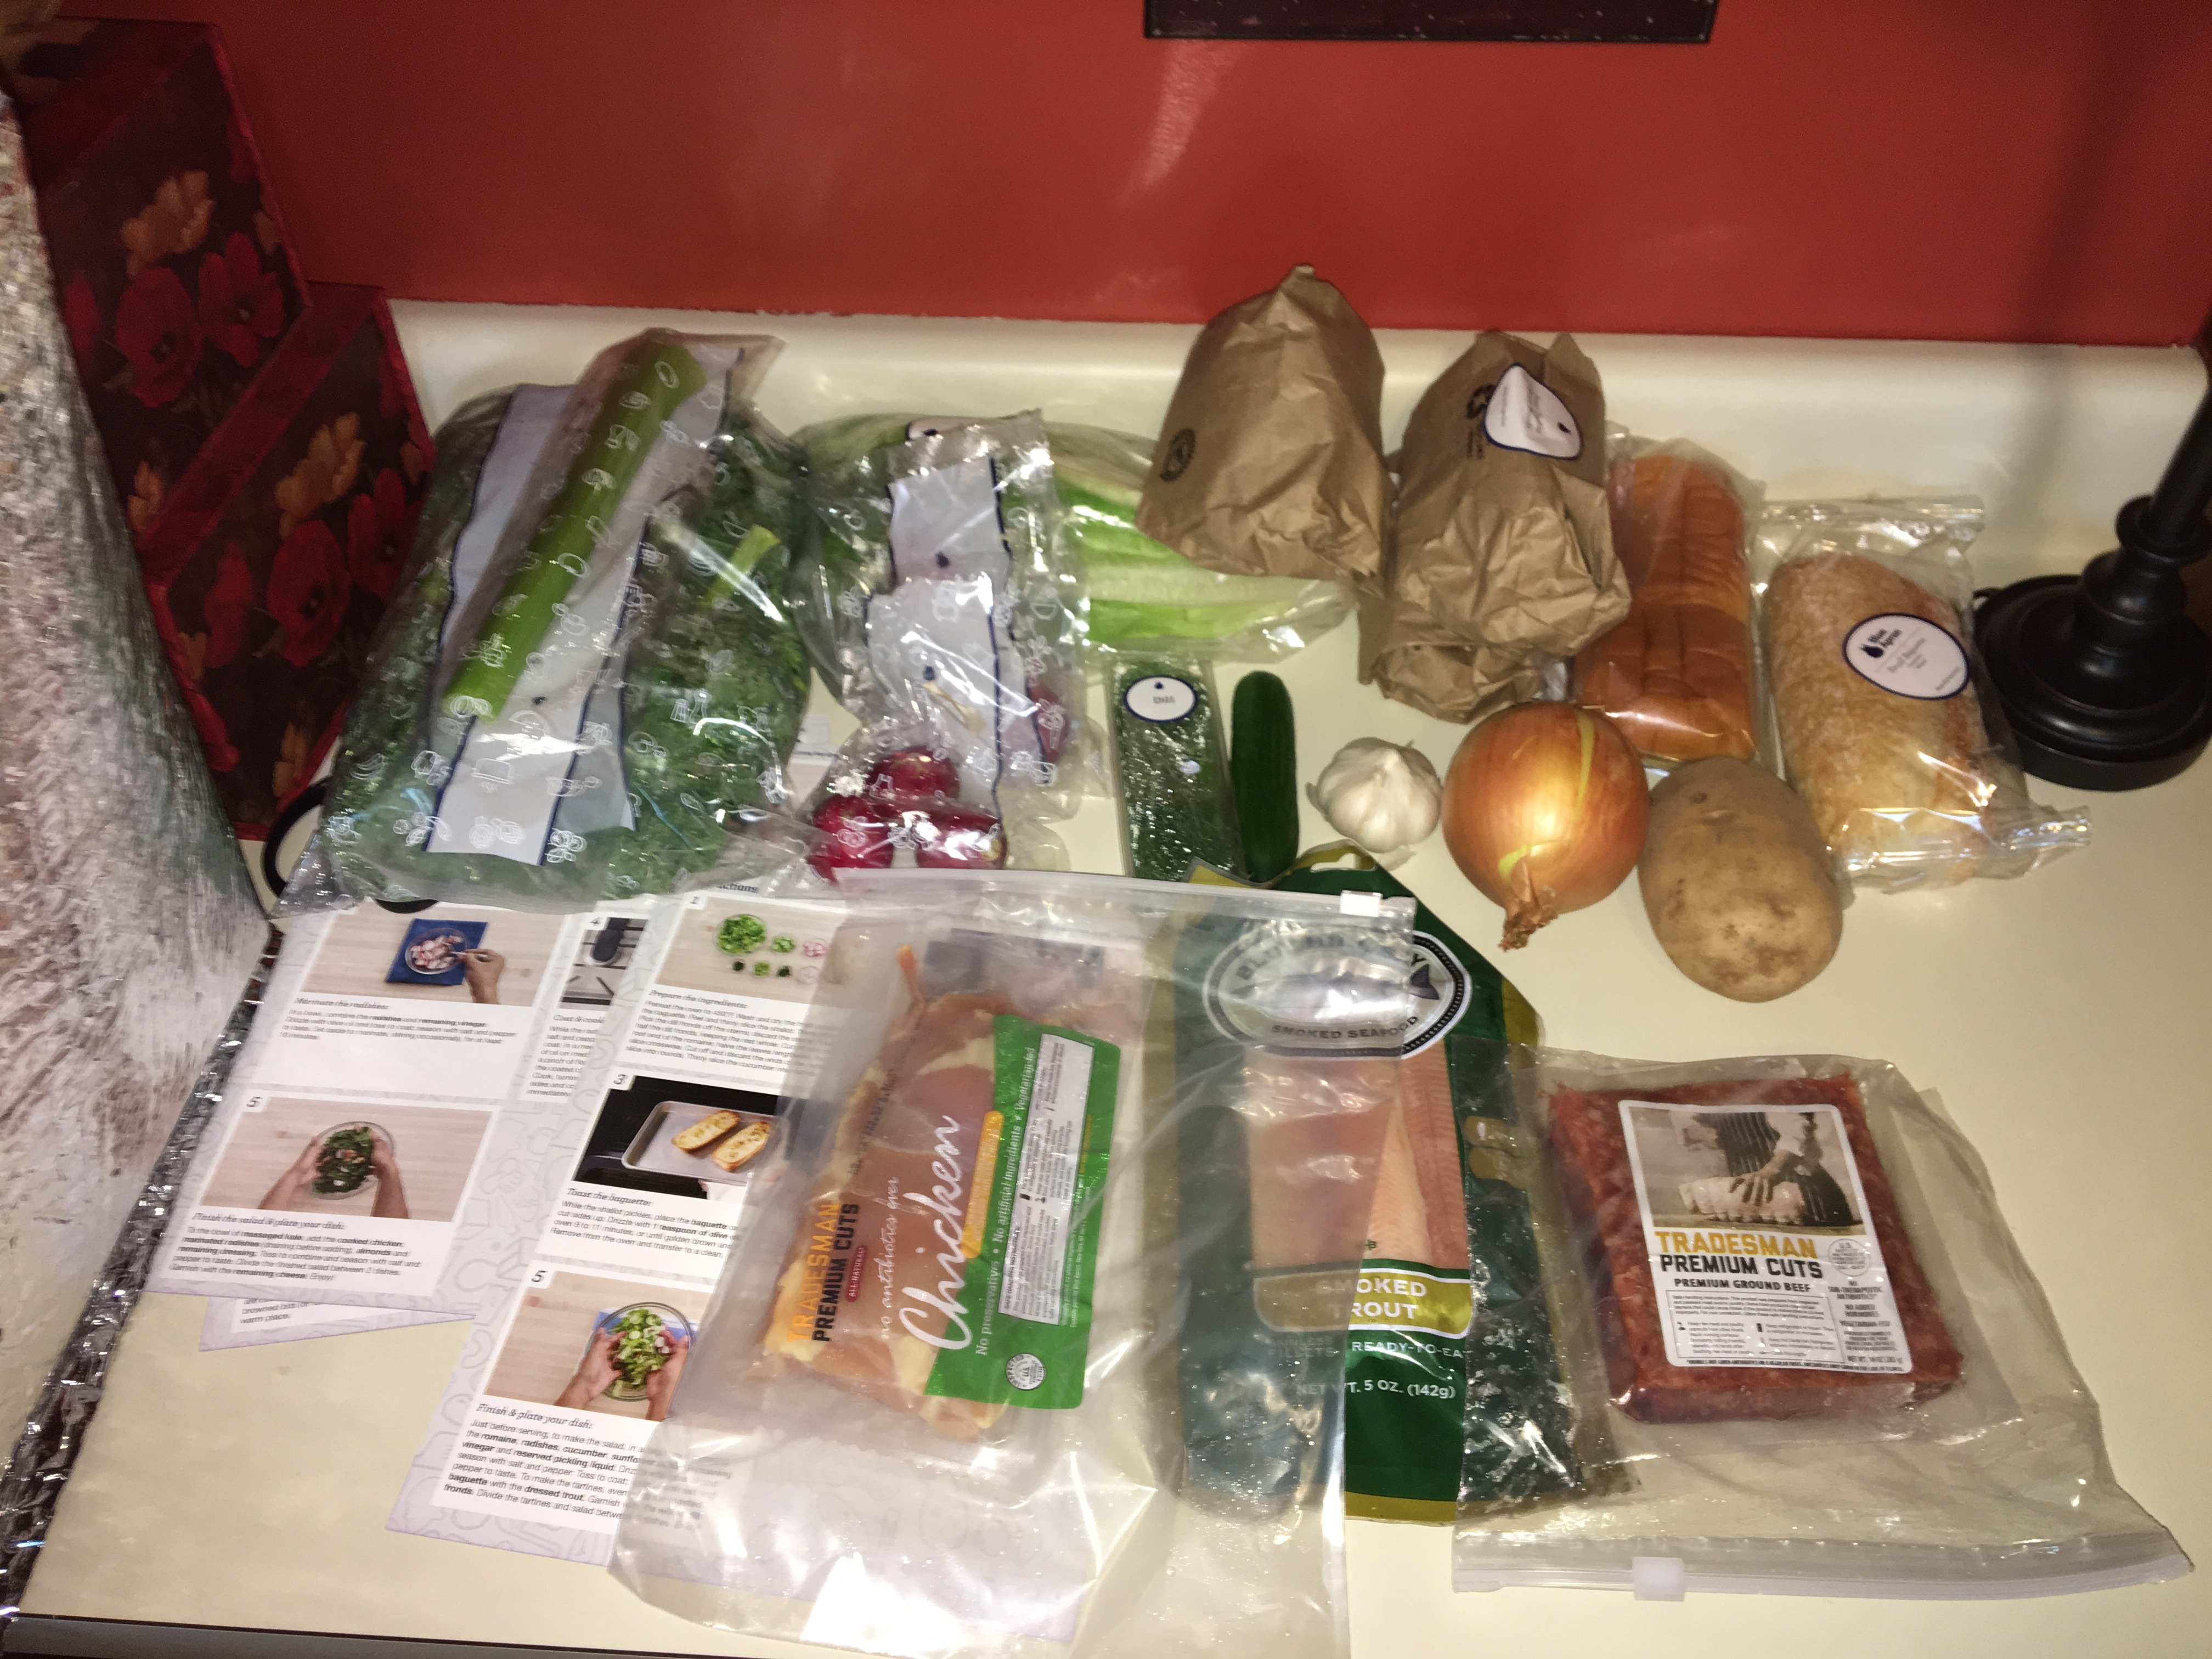 Blue apron fails - I Tried Blue Apron For A Week Here S What Happened Eating With Erin